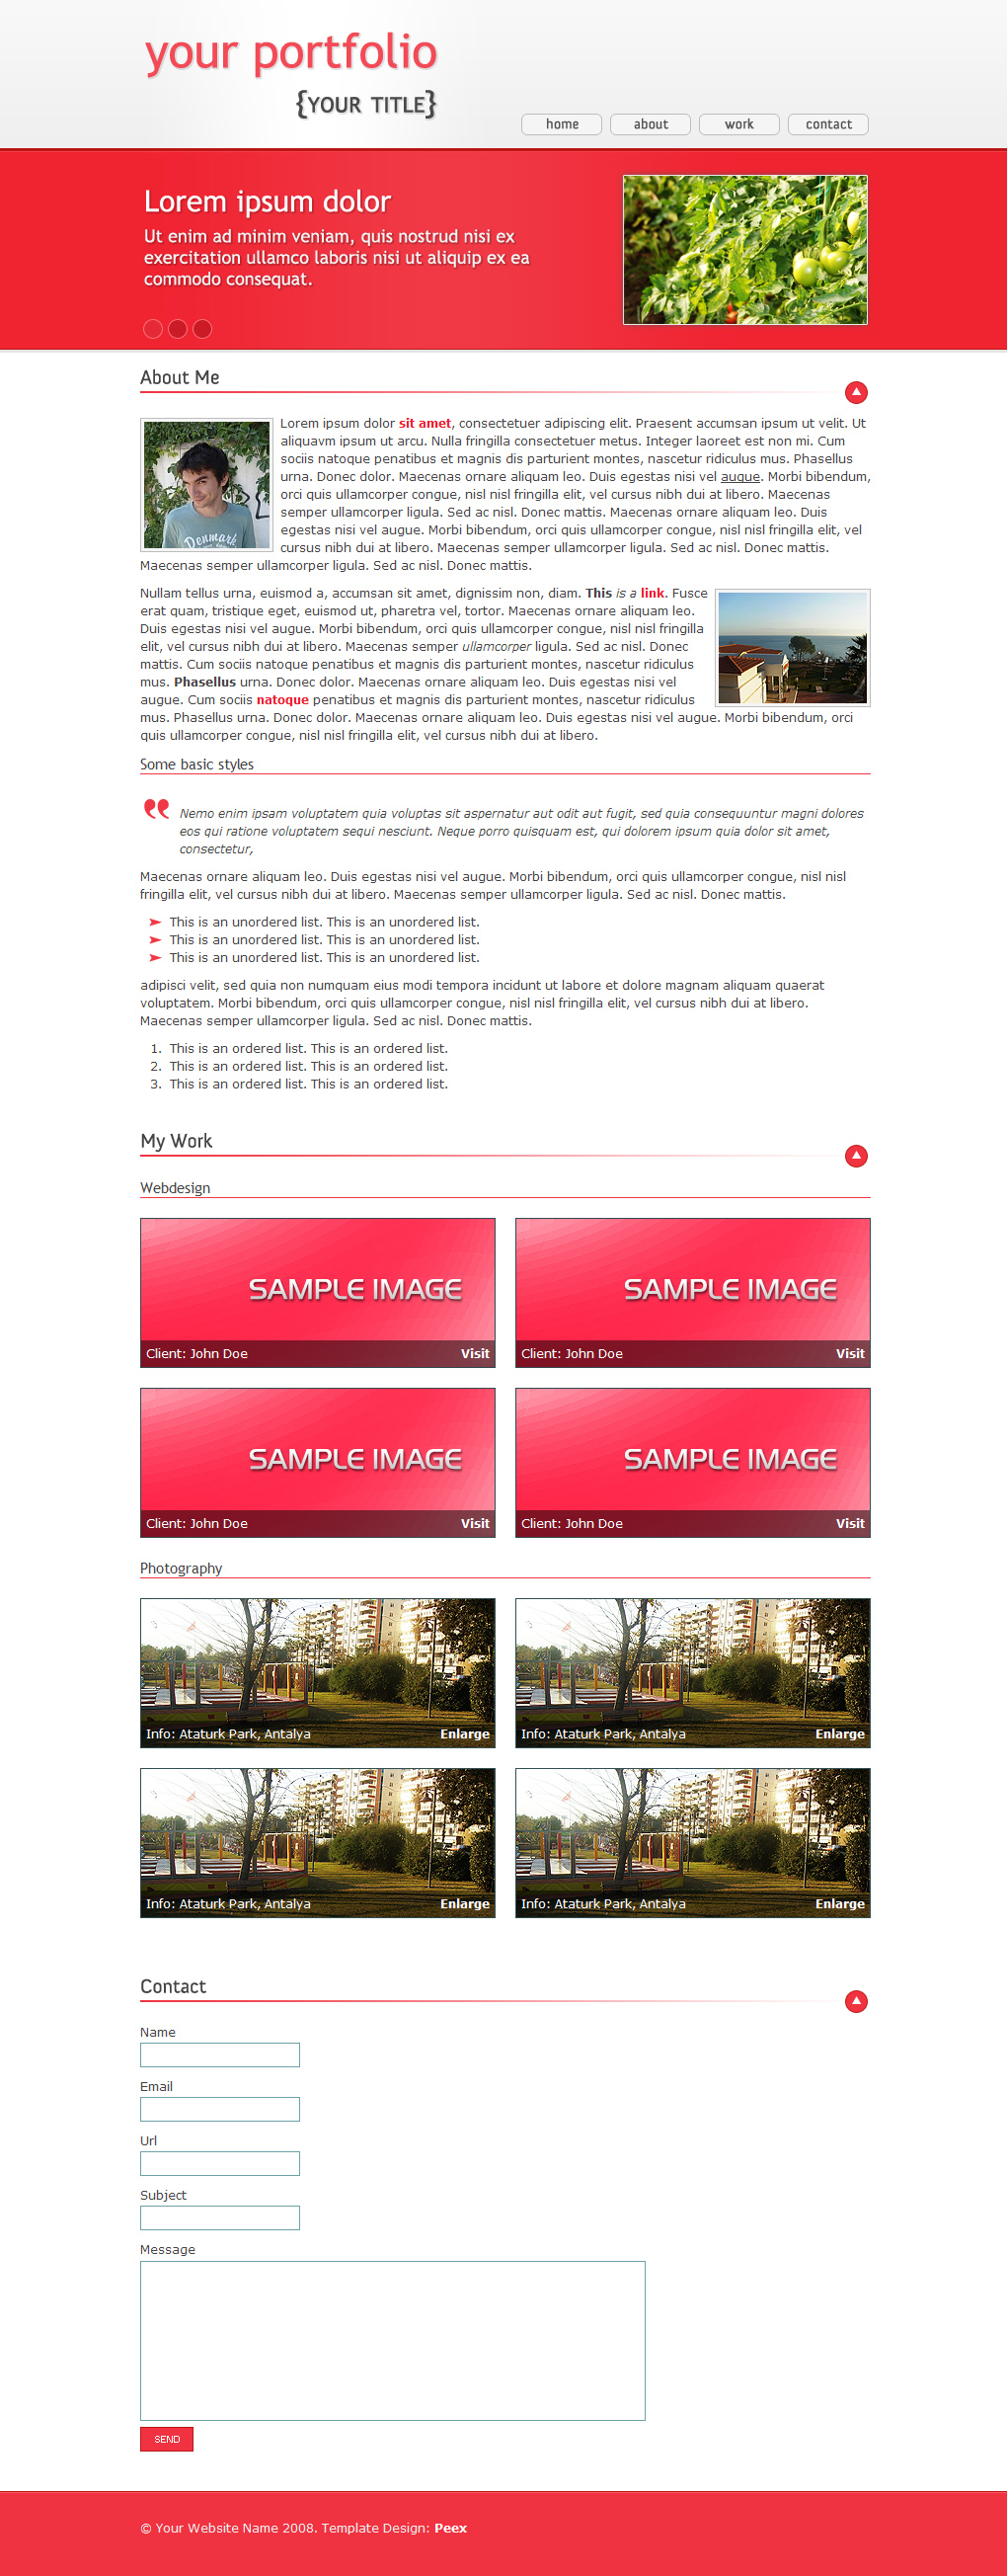 Domates - One Page Portfolio - This is a one page portfolio theme so here is the screenshot.